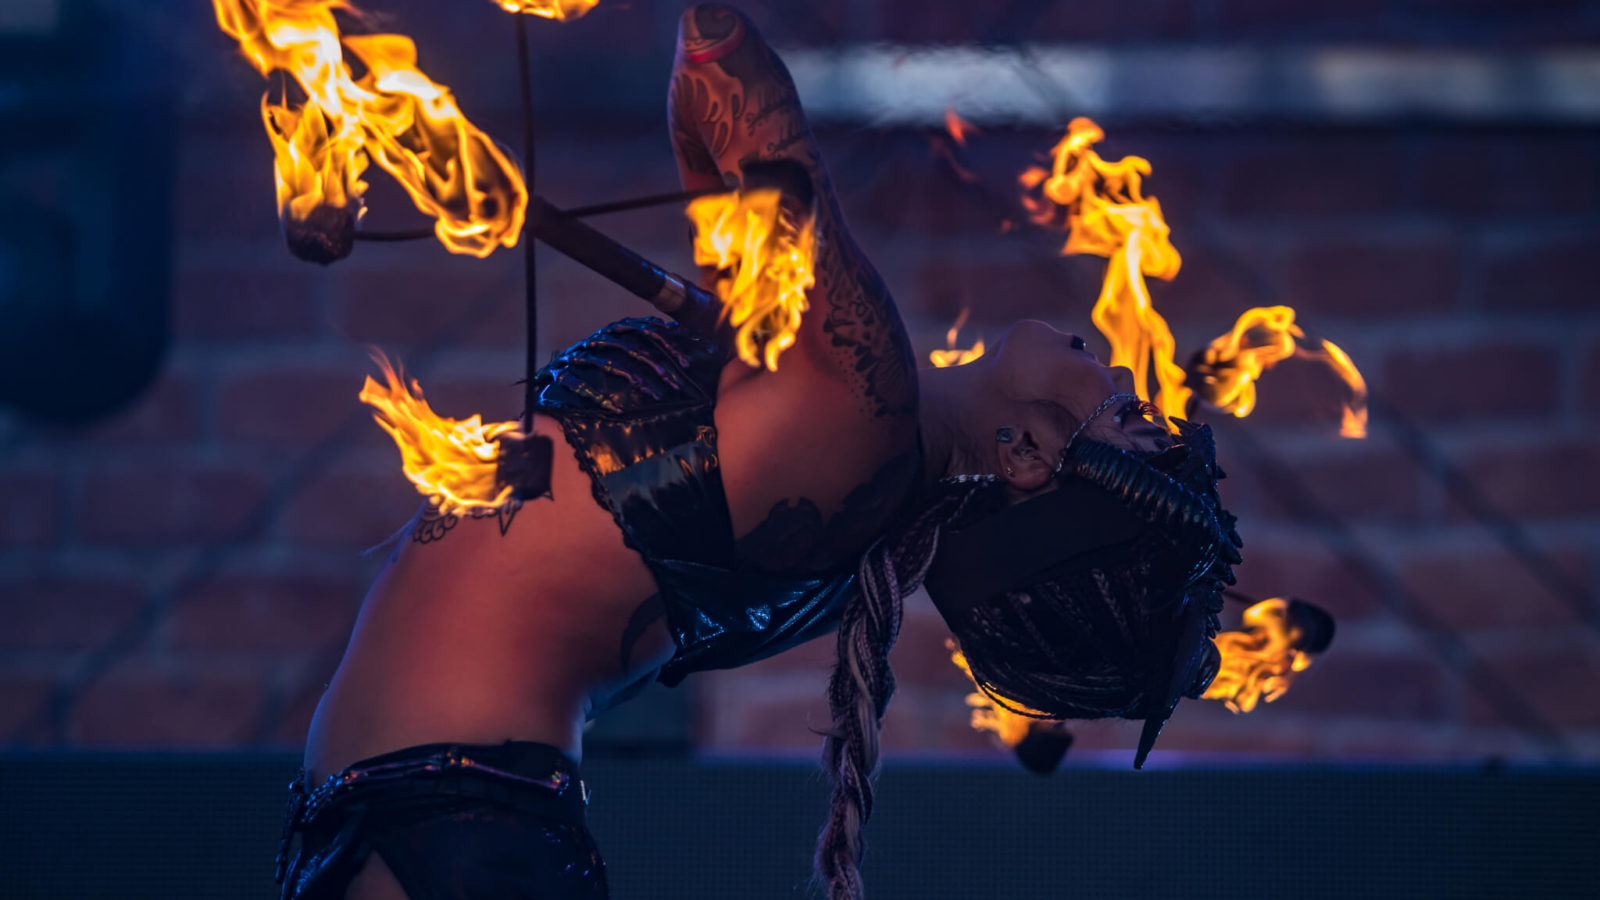 costumed performer working with fire